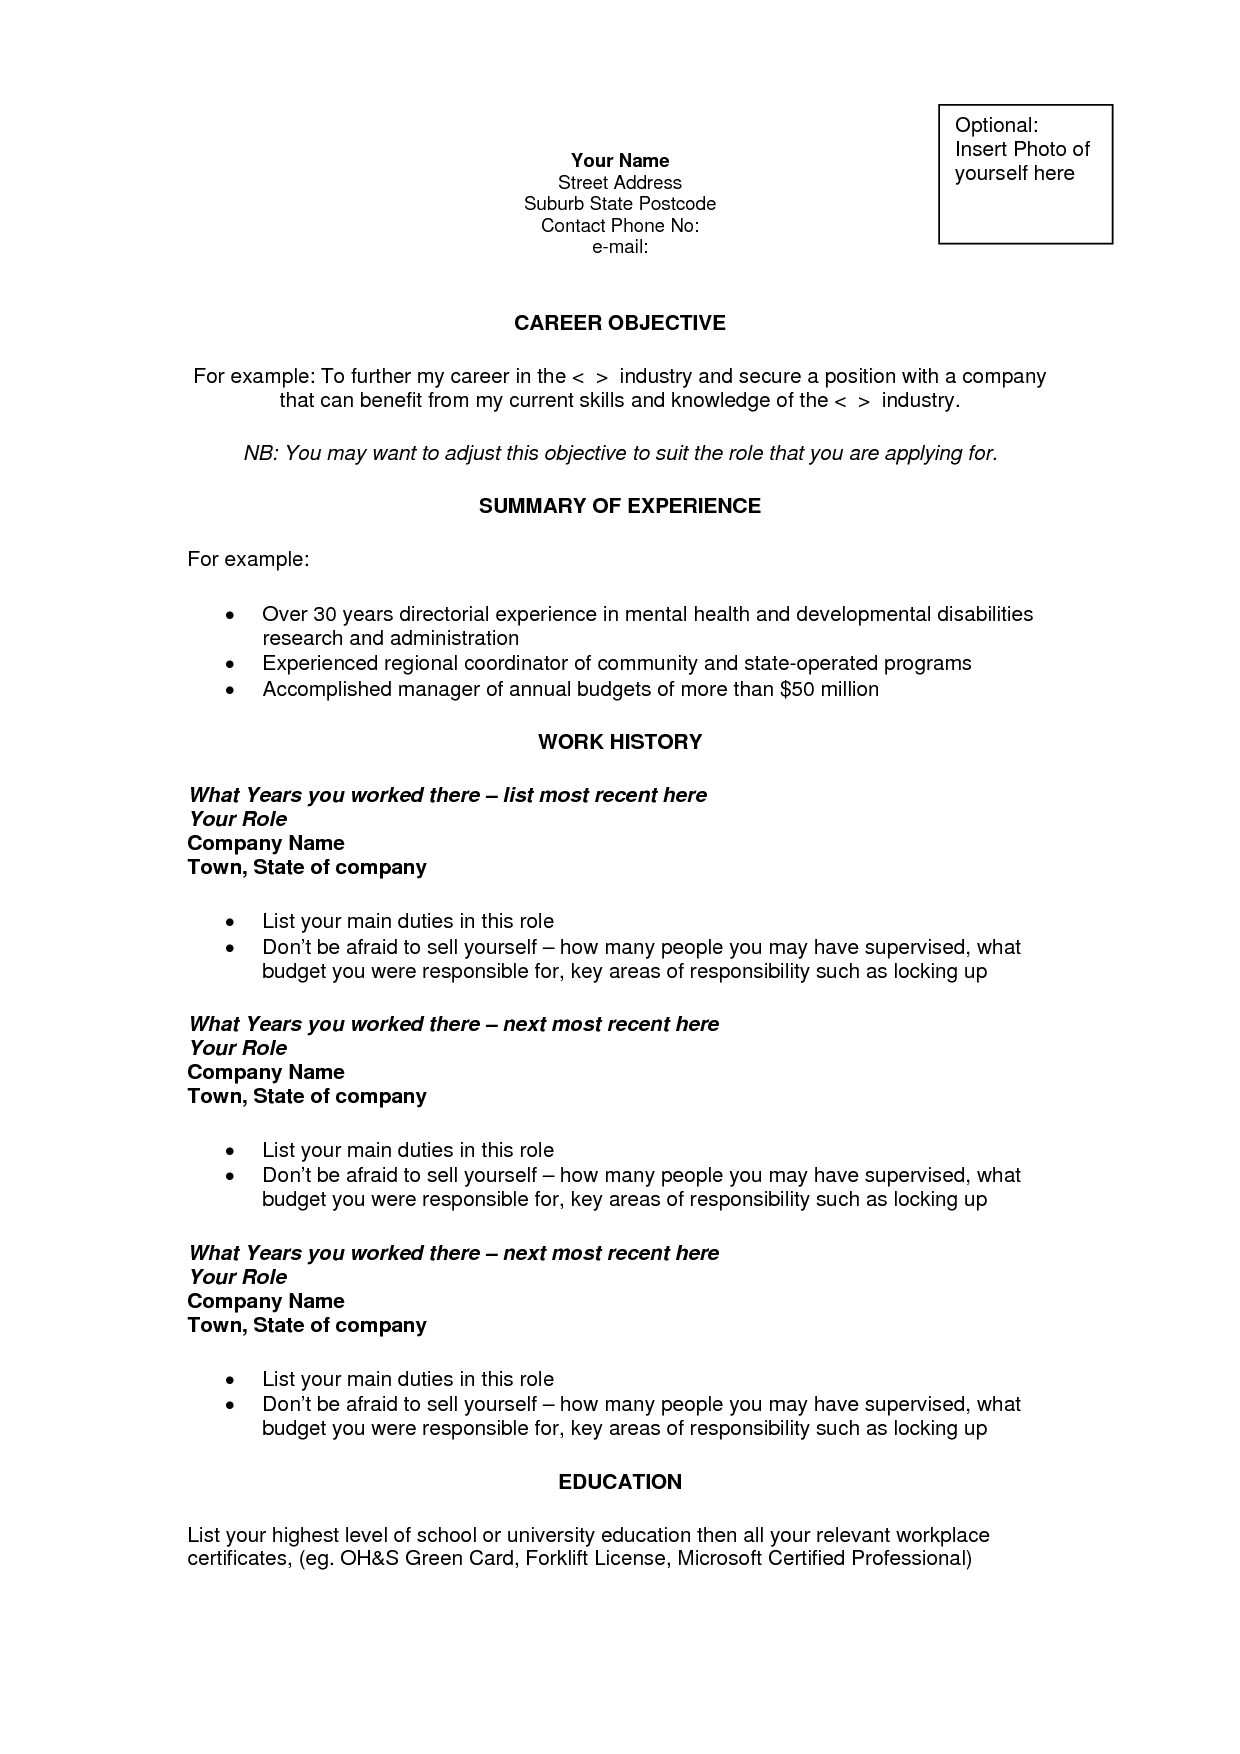 career objectives template - Bjective Resume Examples